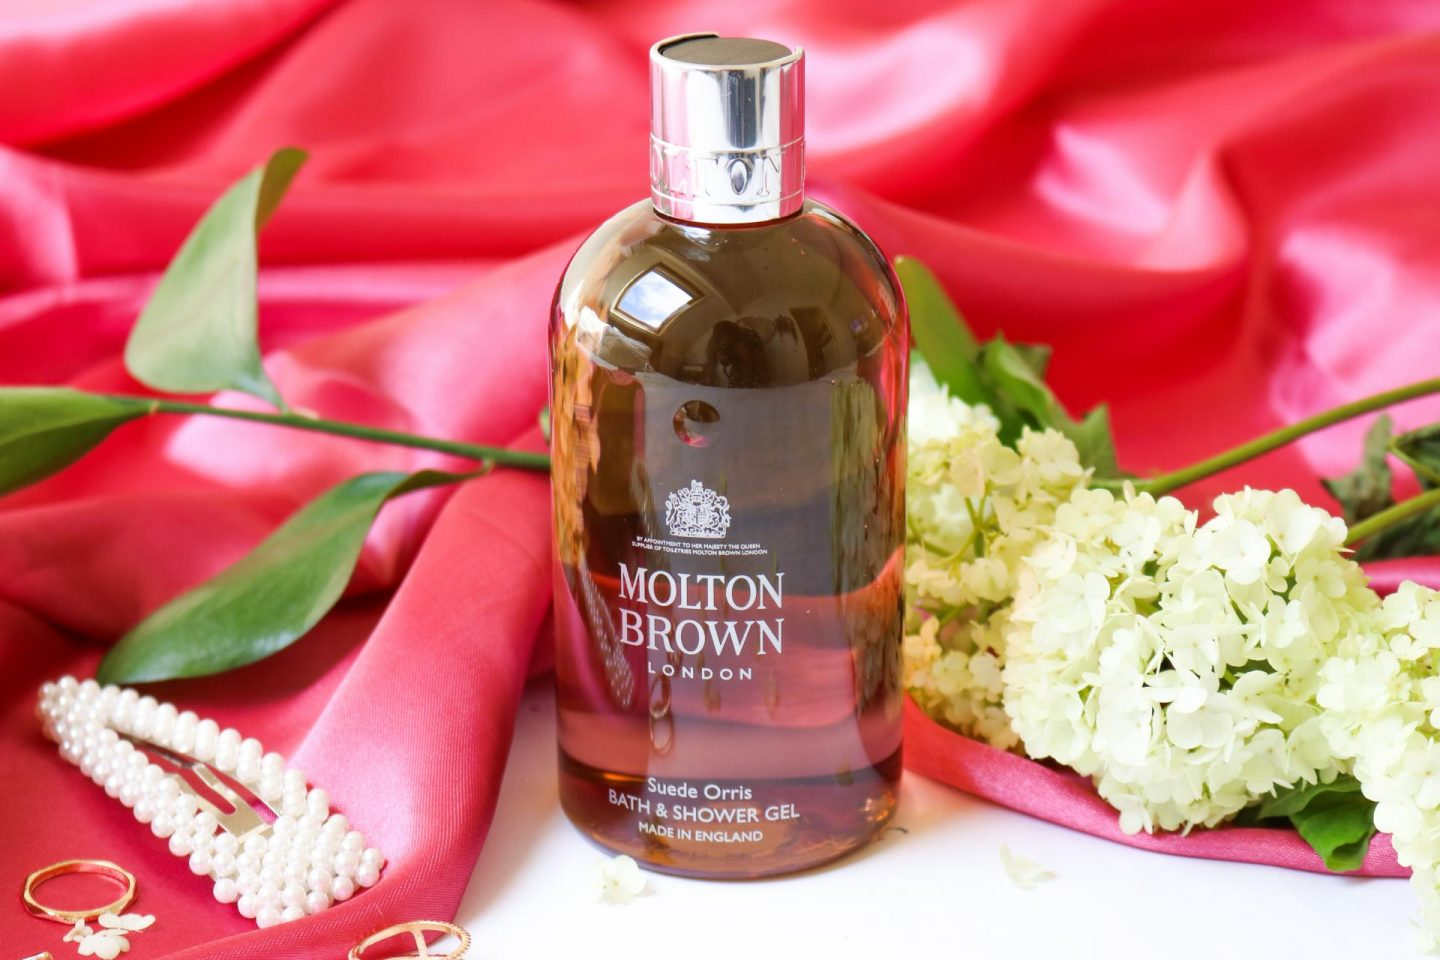 Molton Brown Suede Orris Bath & Shower Gel